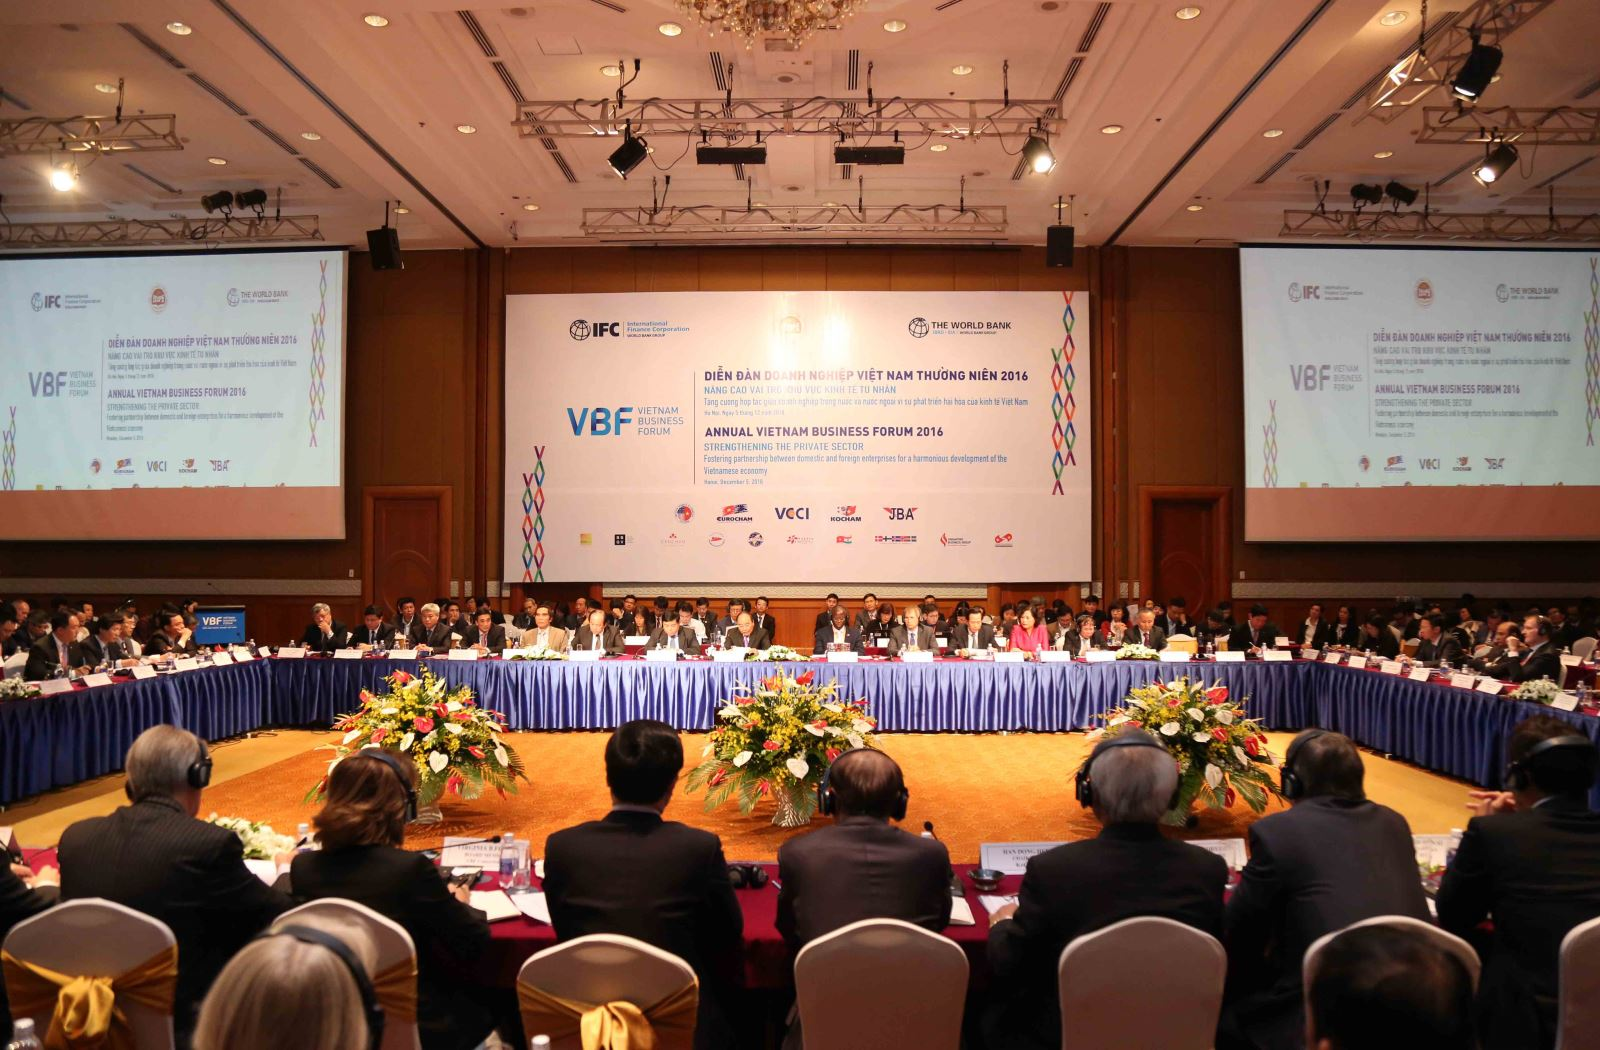 VBF 2017 to reassess Vietnam's position in Industry 4.0 world